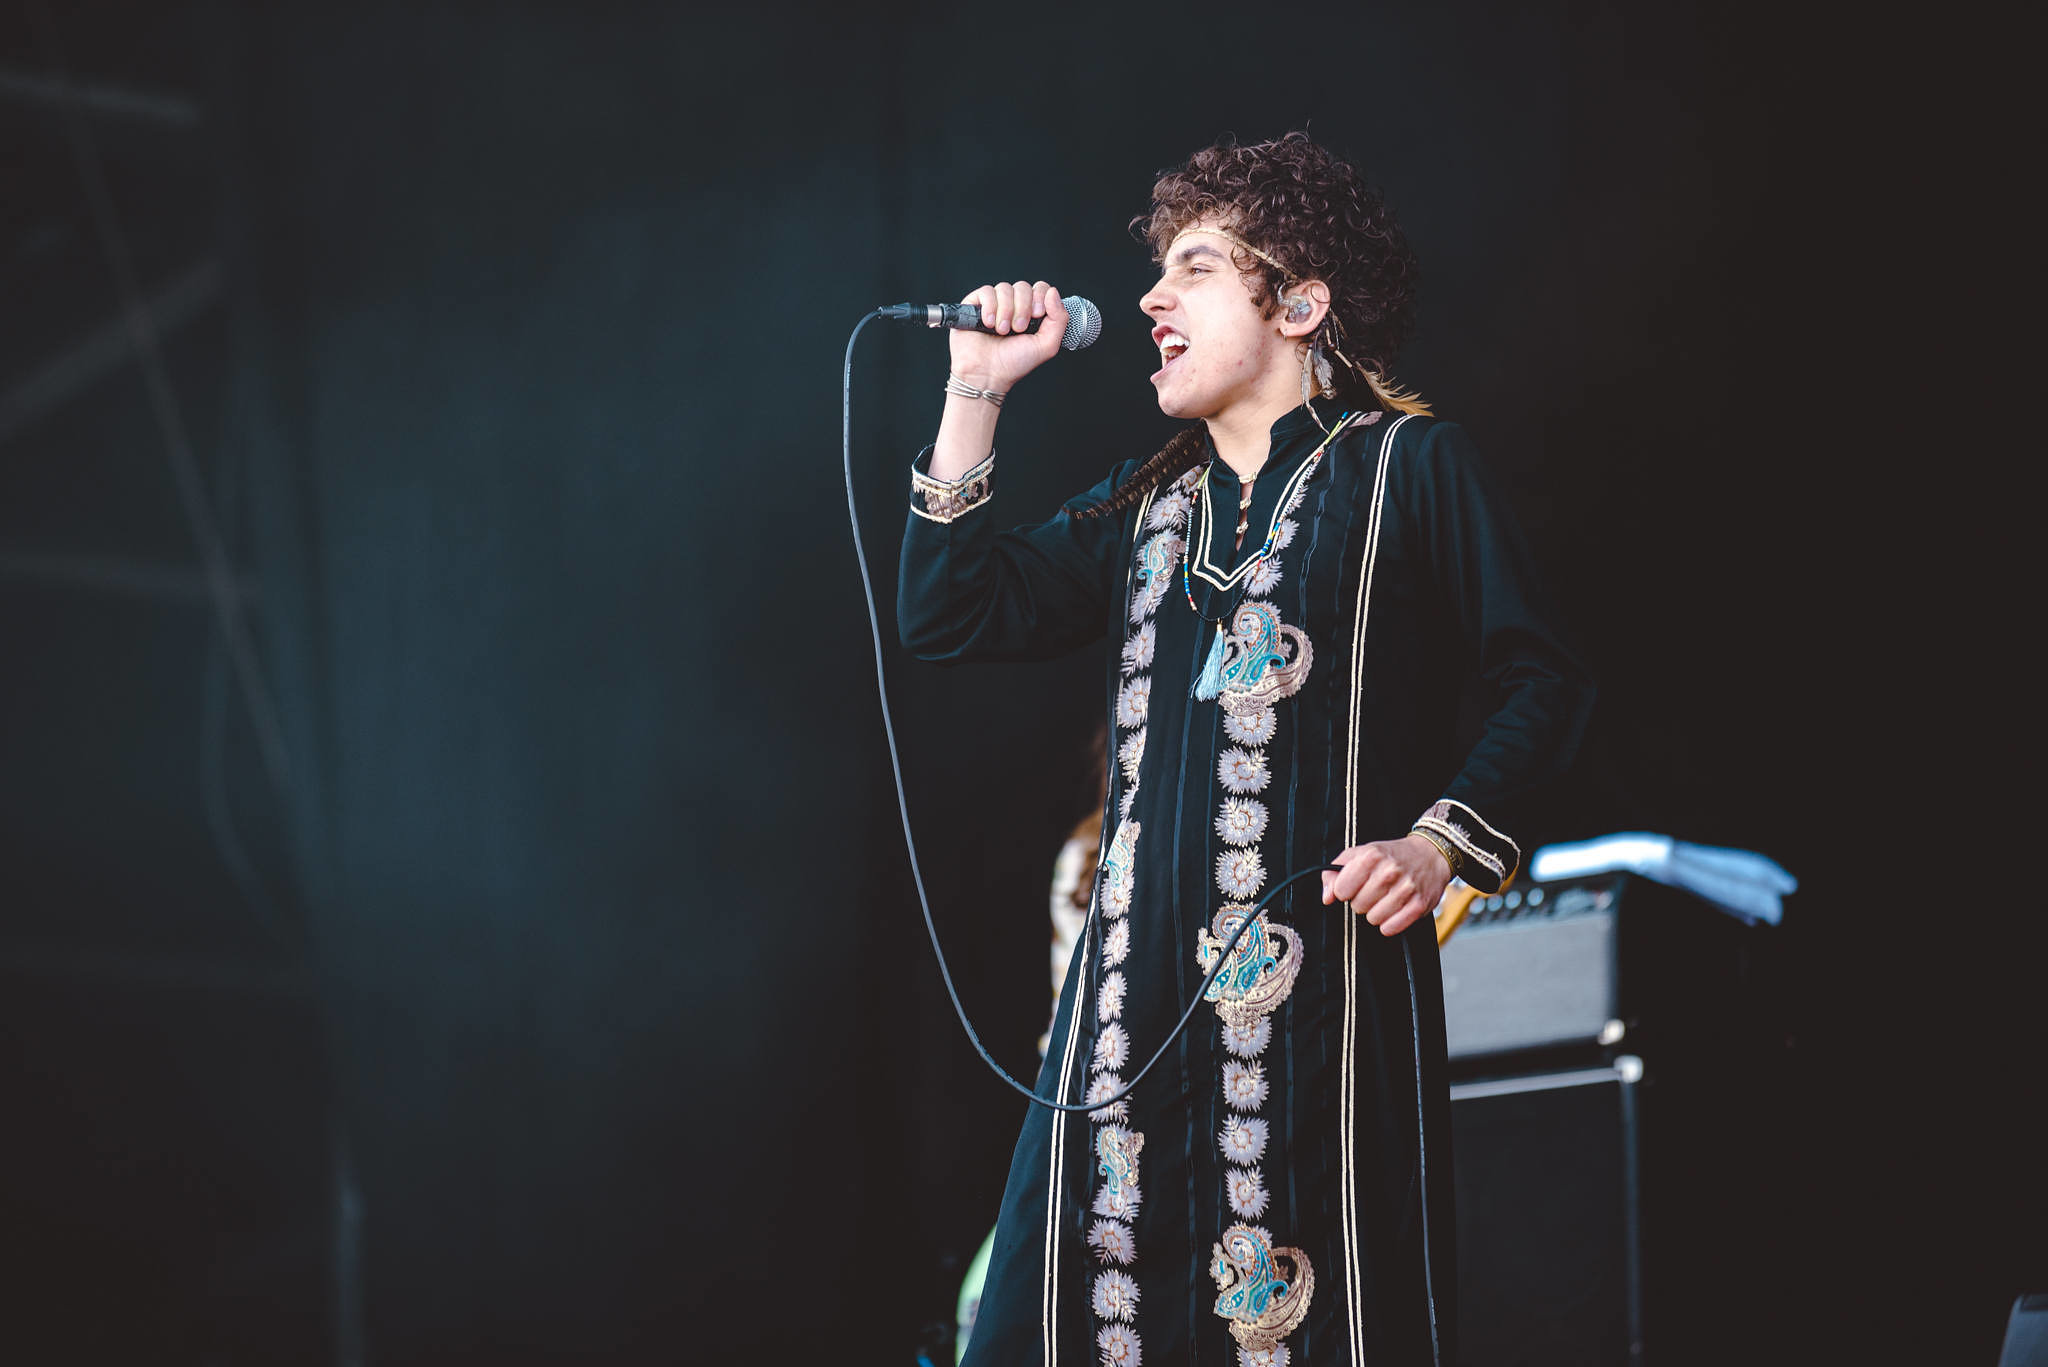 Download festival new music friday greta van fleet you me at six and more download festival - Greta van fleet download ...